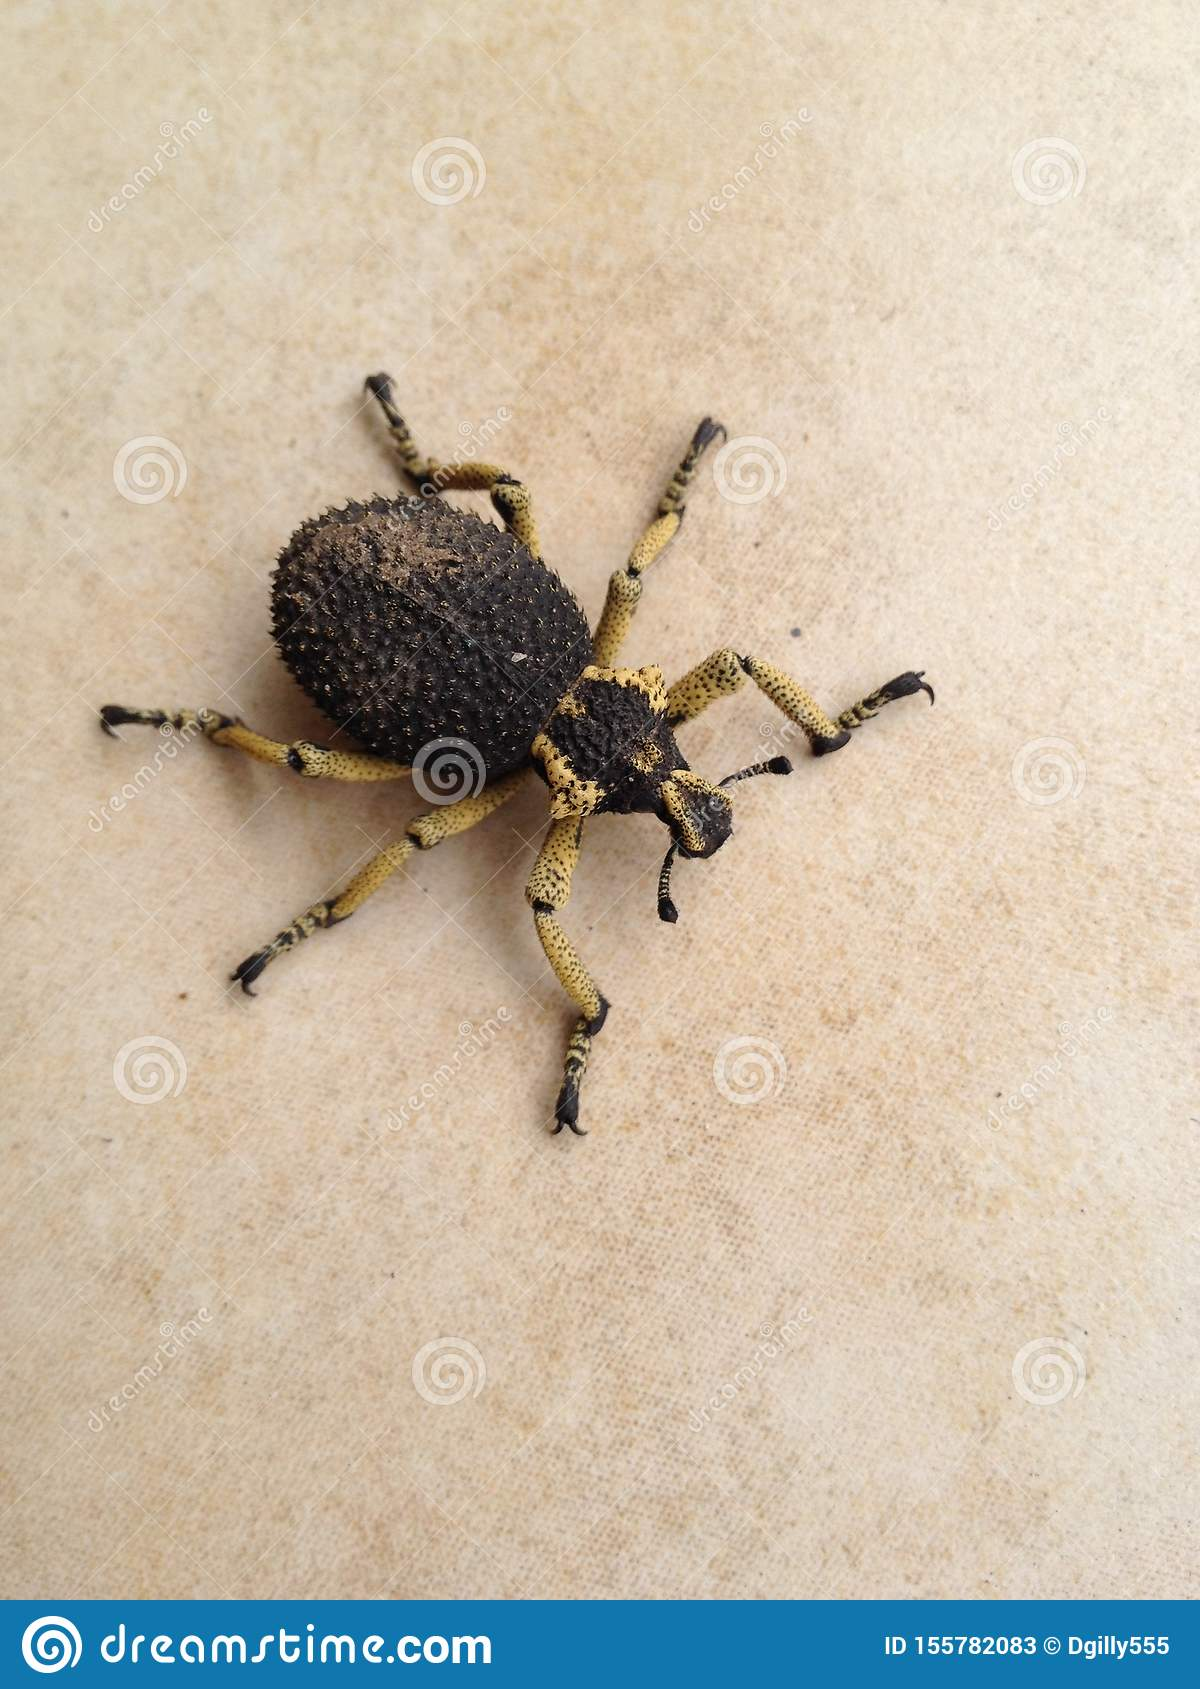 55 Forensic Entomology Photos Free Royalty Free Stock Photos From Dreamstime